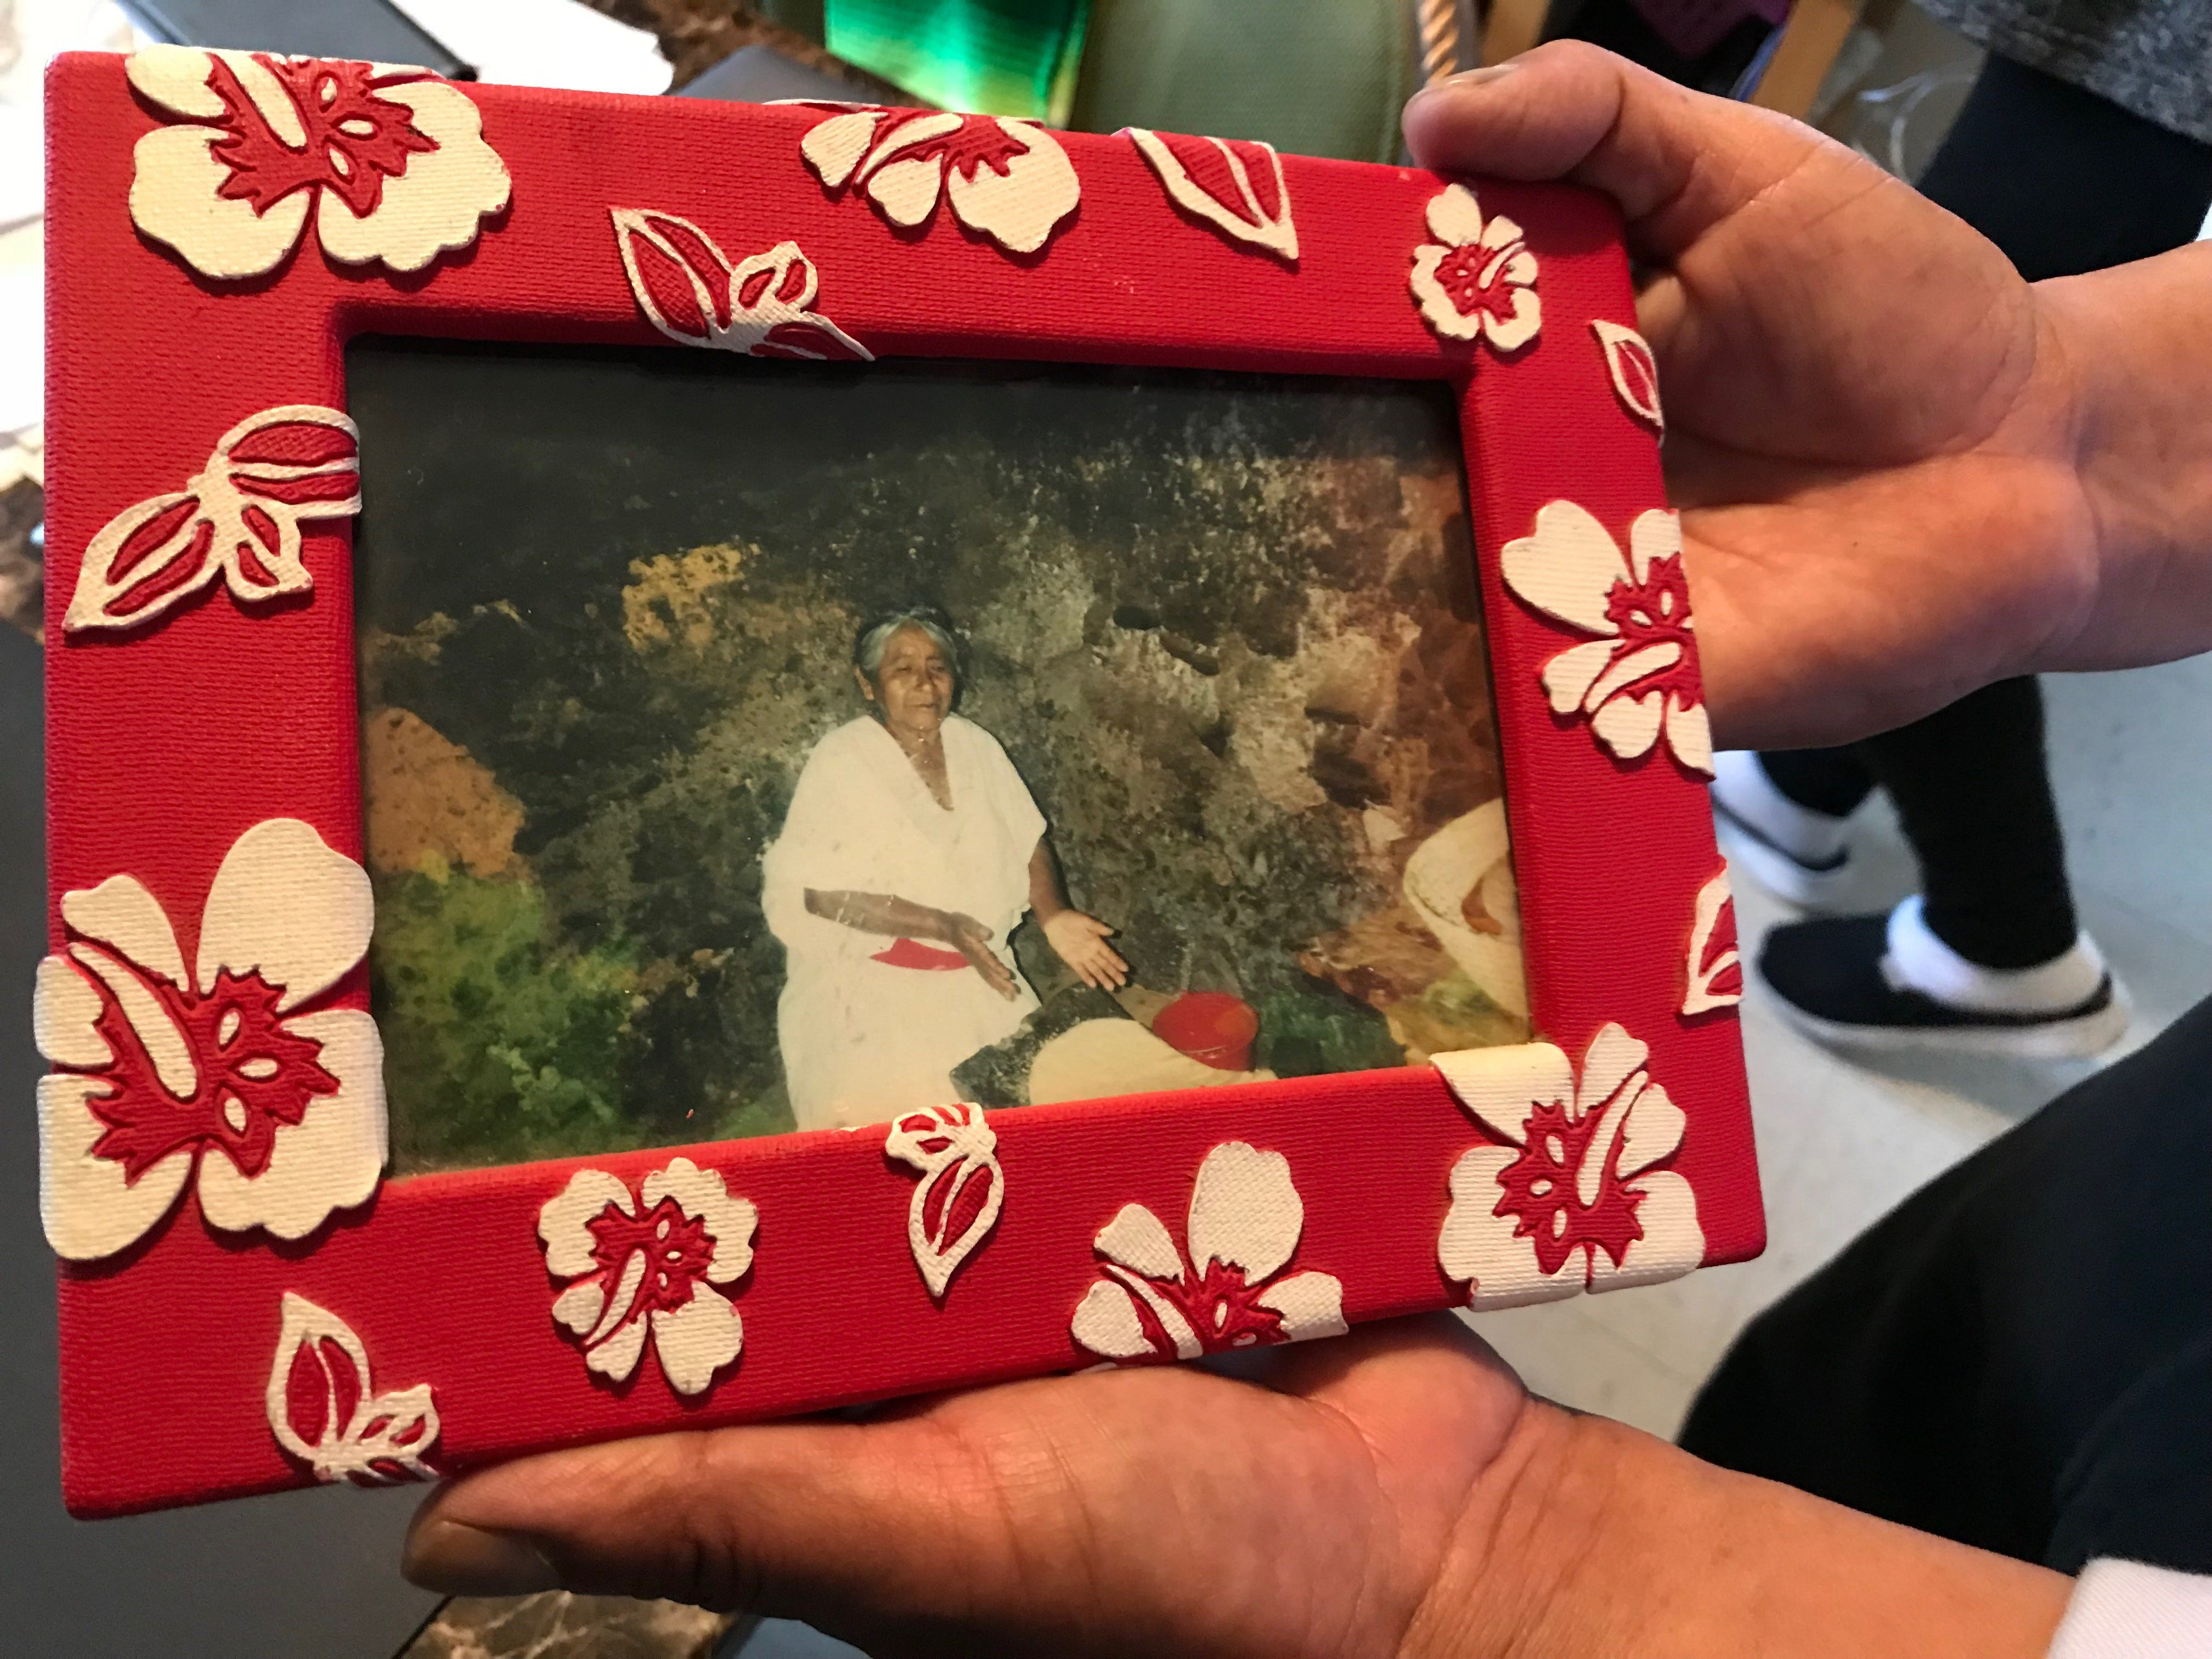 Adolfo González holds a picture of his 91-year-old mother Carmen, showing her making maza in their hometown in Oaxaca, México.